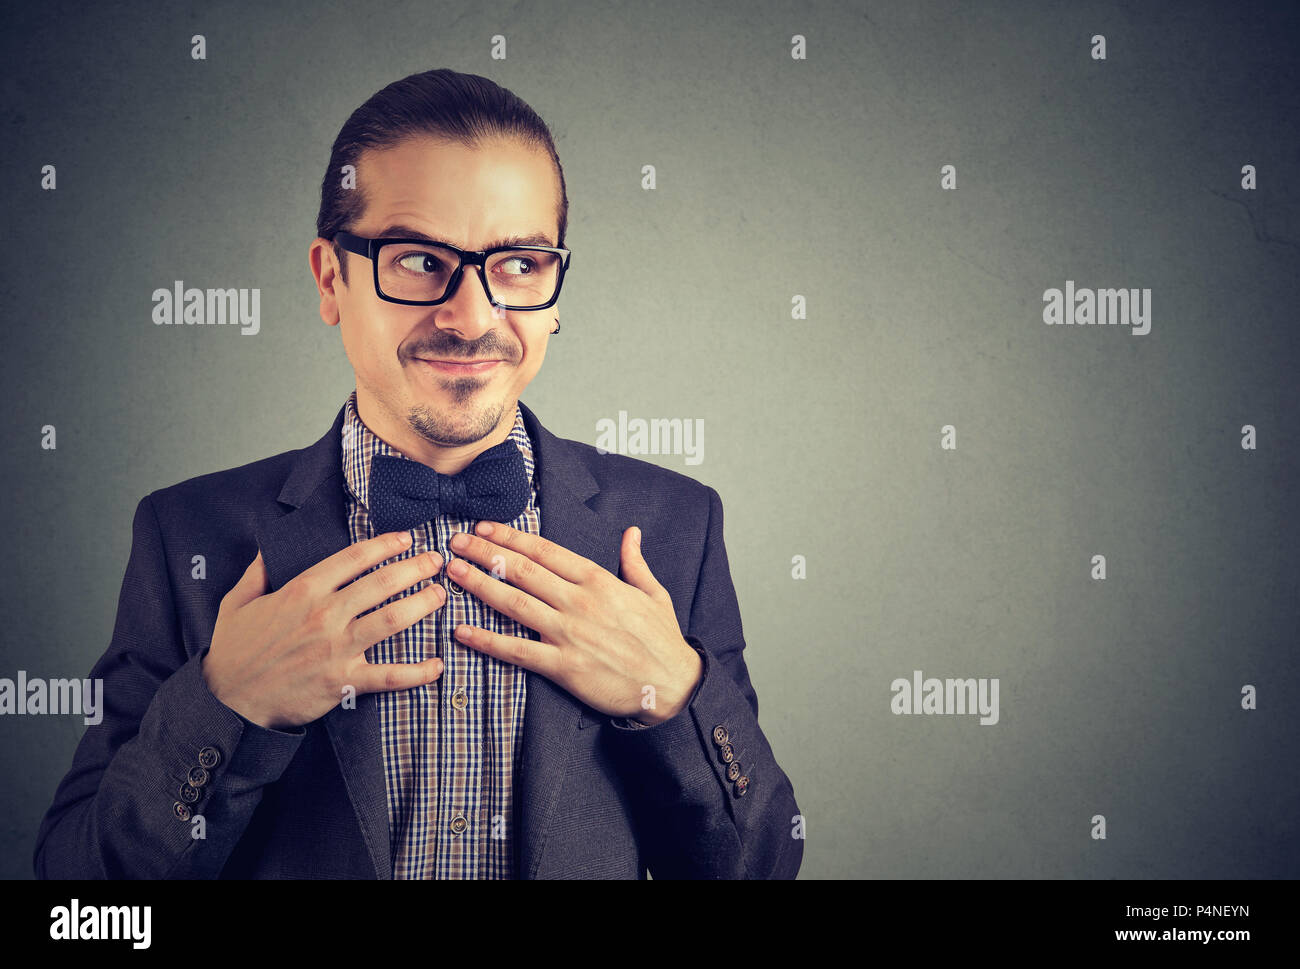 Young crazy man in glasses and suit looking nerdy away holding hands on chest in shyness on gray background - Stock Image